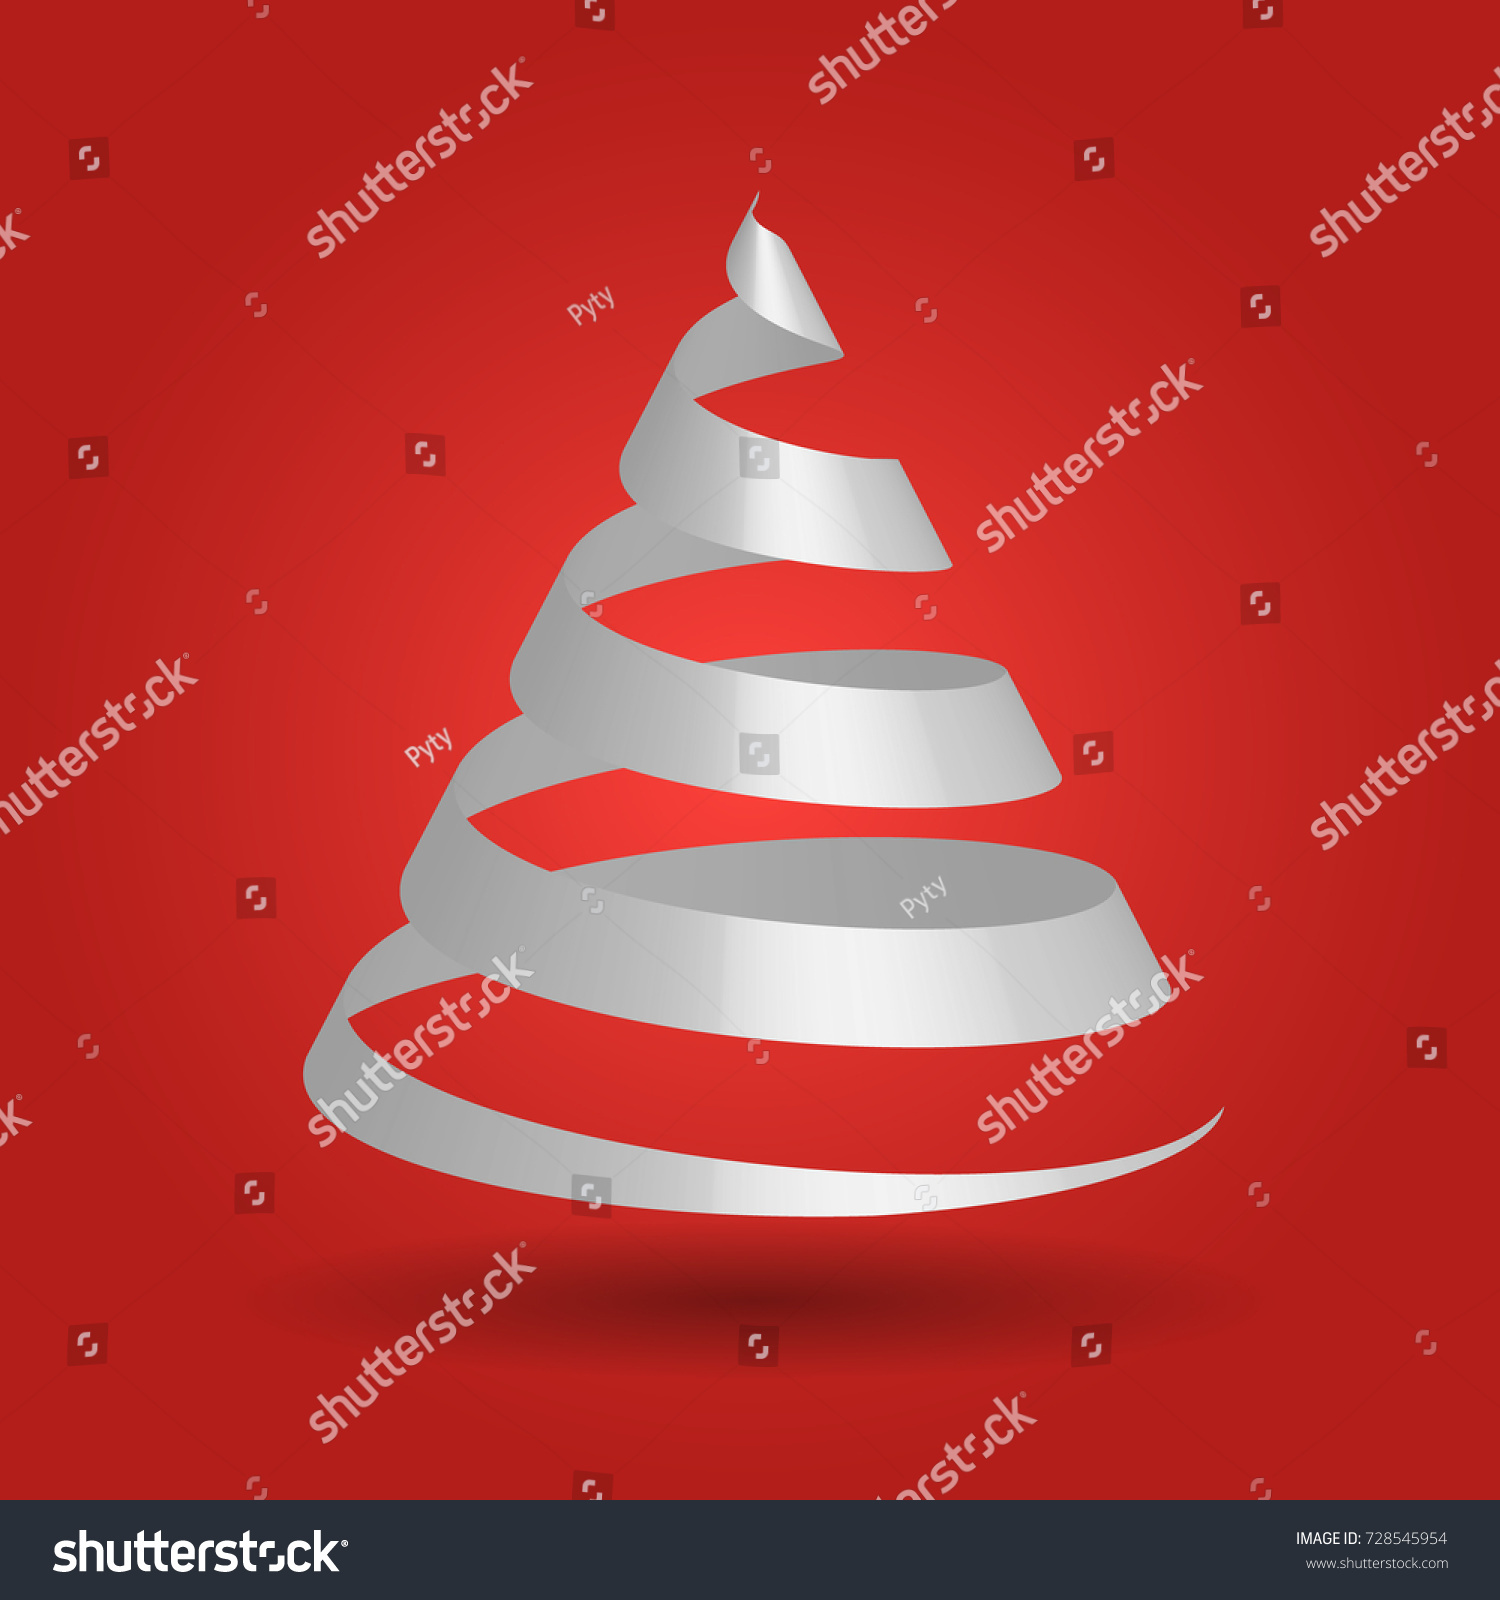 Simple Red Paper Ribbon Folded Shape Stock Vector Royalty Free